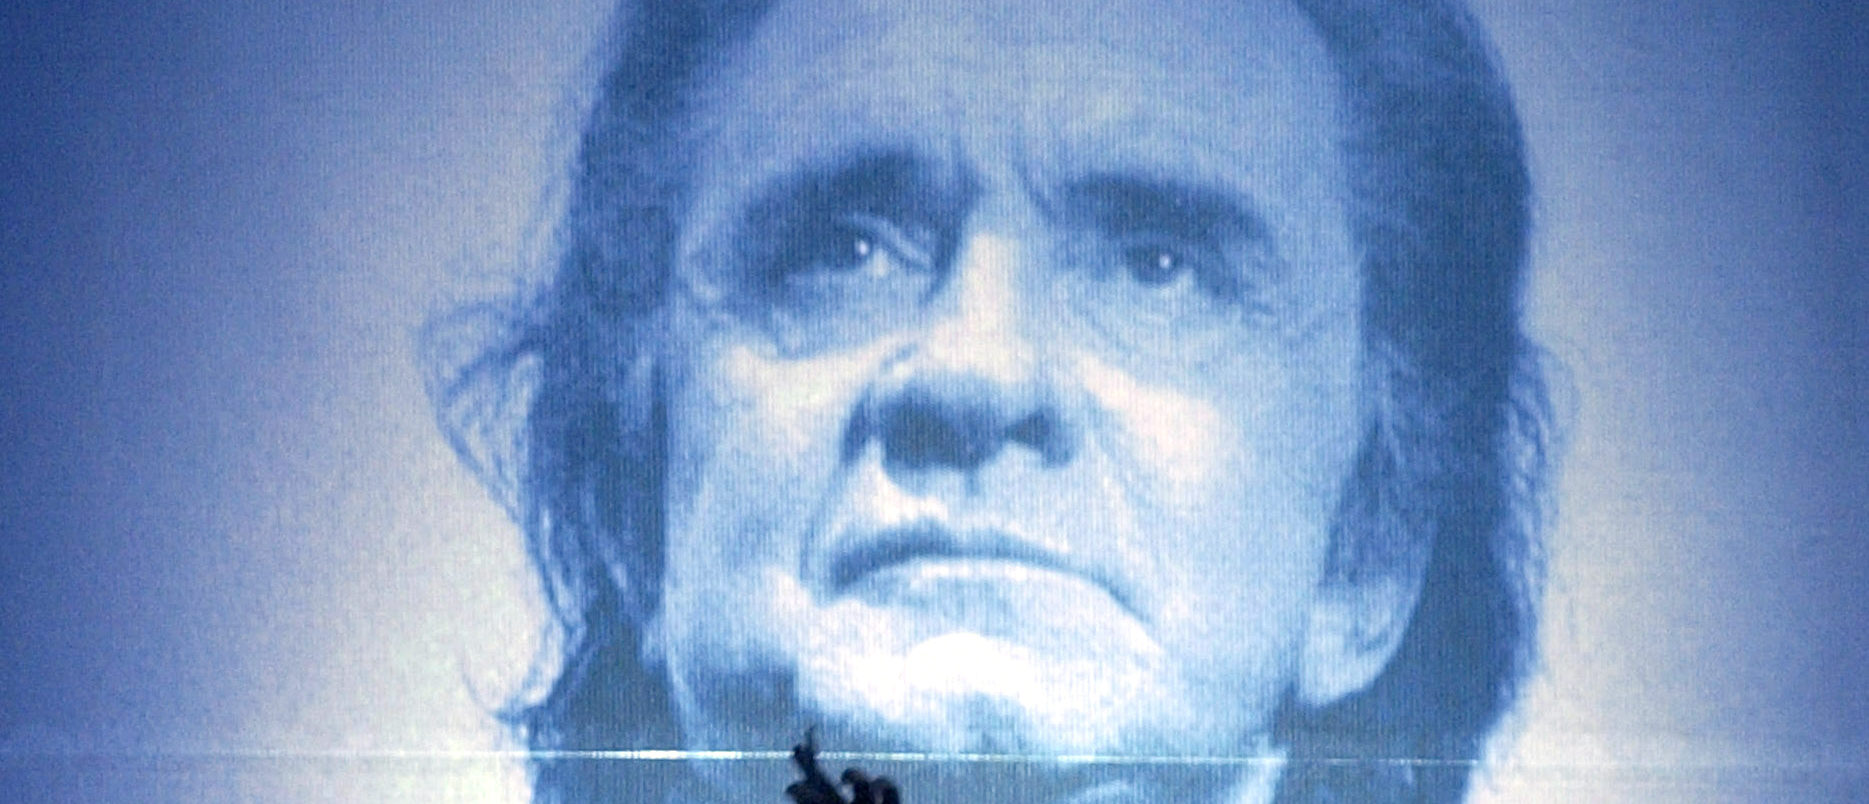 A stage hand at the Ryman Auditorium puts the final touchs on a large photo of the late country music legend Johnny Cash, before the Cash tribute concert in Nashville, Tennessee, late November 10, 2003. Cash died September 12, 2003, at the age of 71 from complications from diabetes. - PBEAHUOMDFS